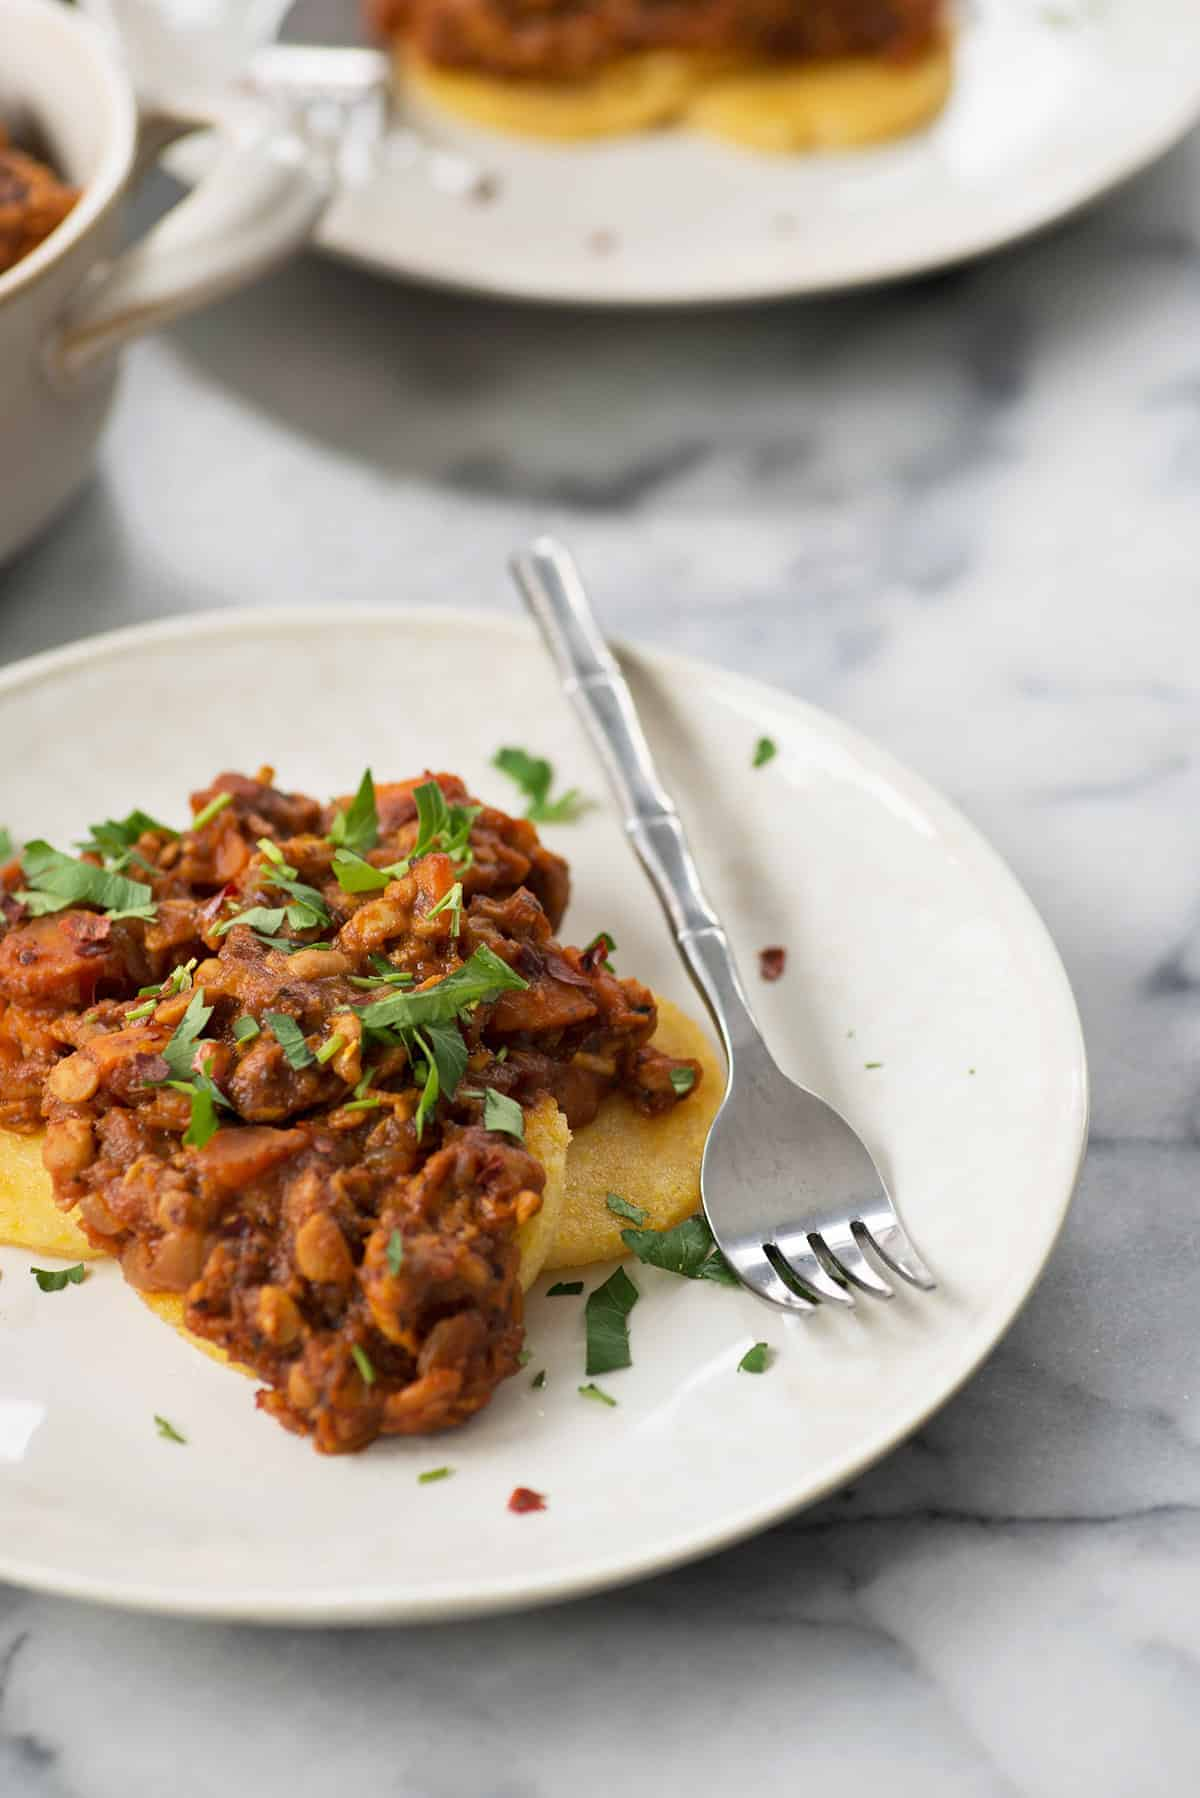 Polenta Cakes with Tempeh Bolognese! Crispy polenta topped with a meaty, vegan ragu. Healthy comfort food! | www.delishknowledge.com